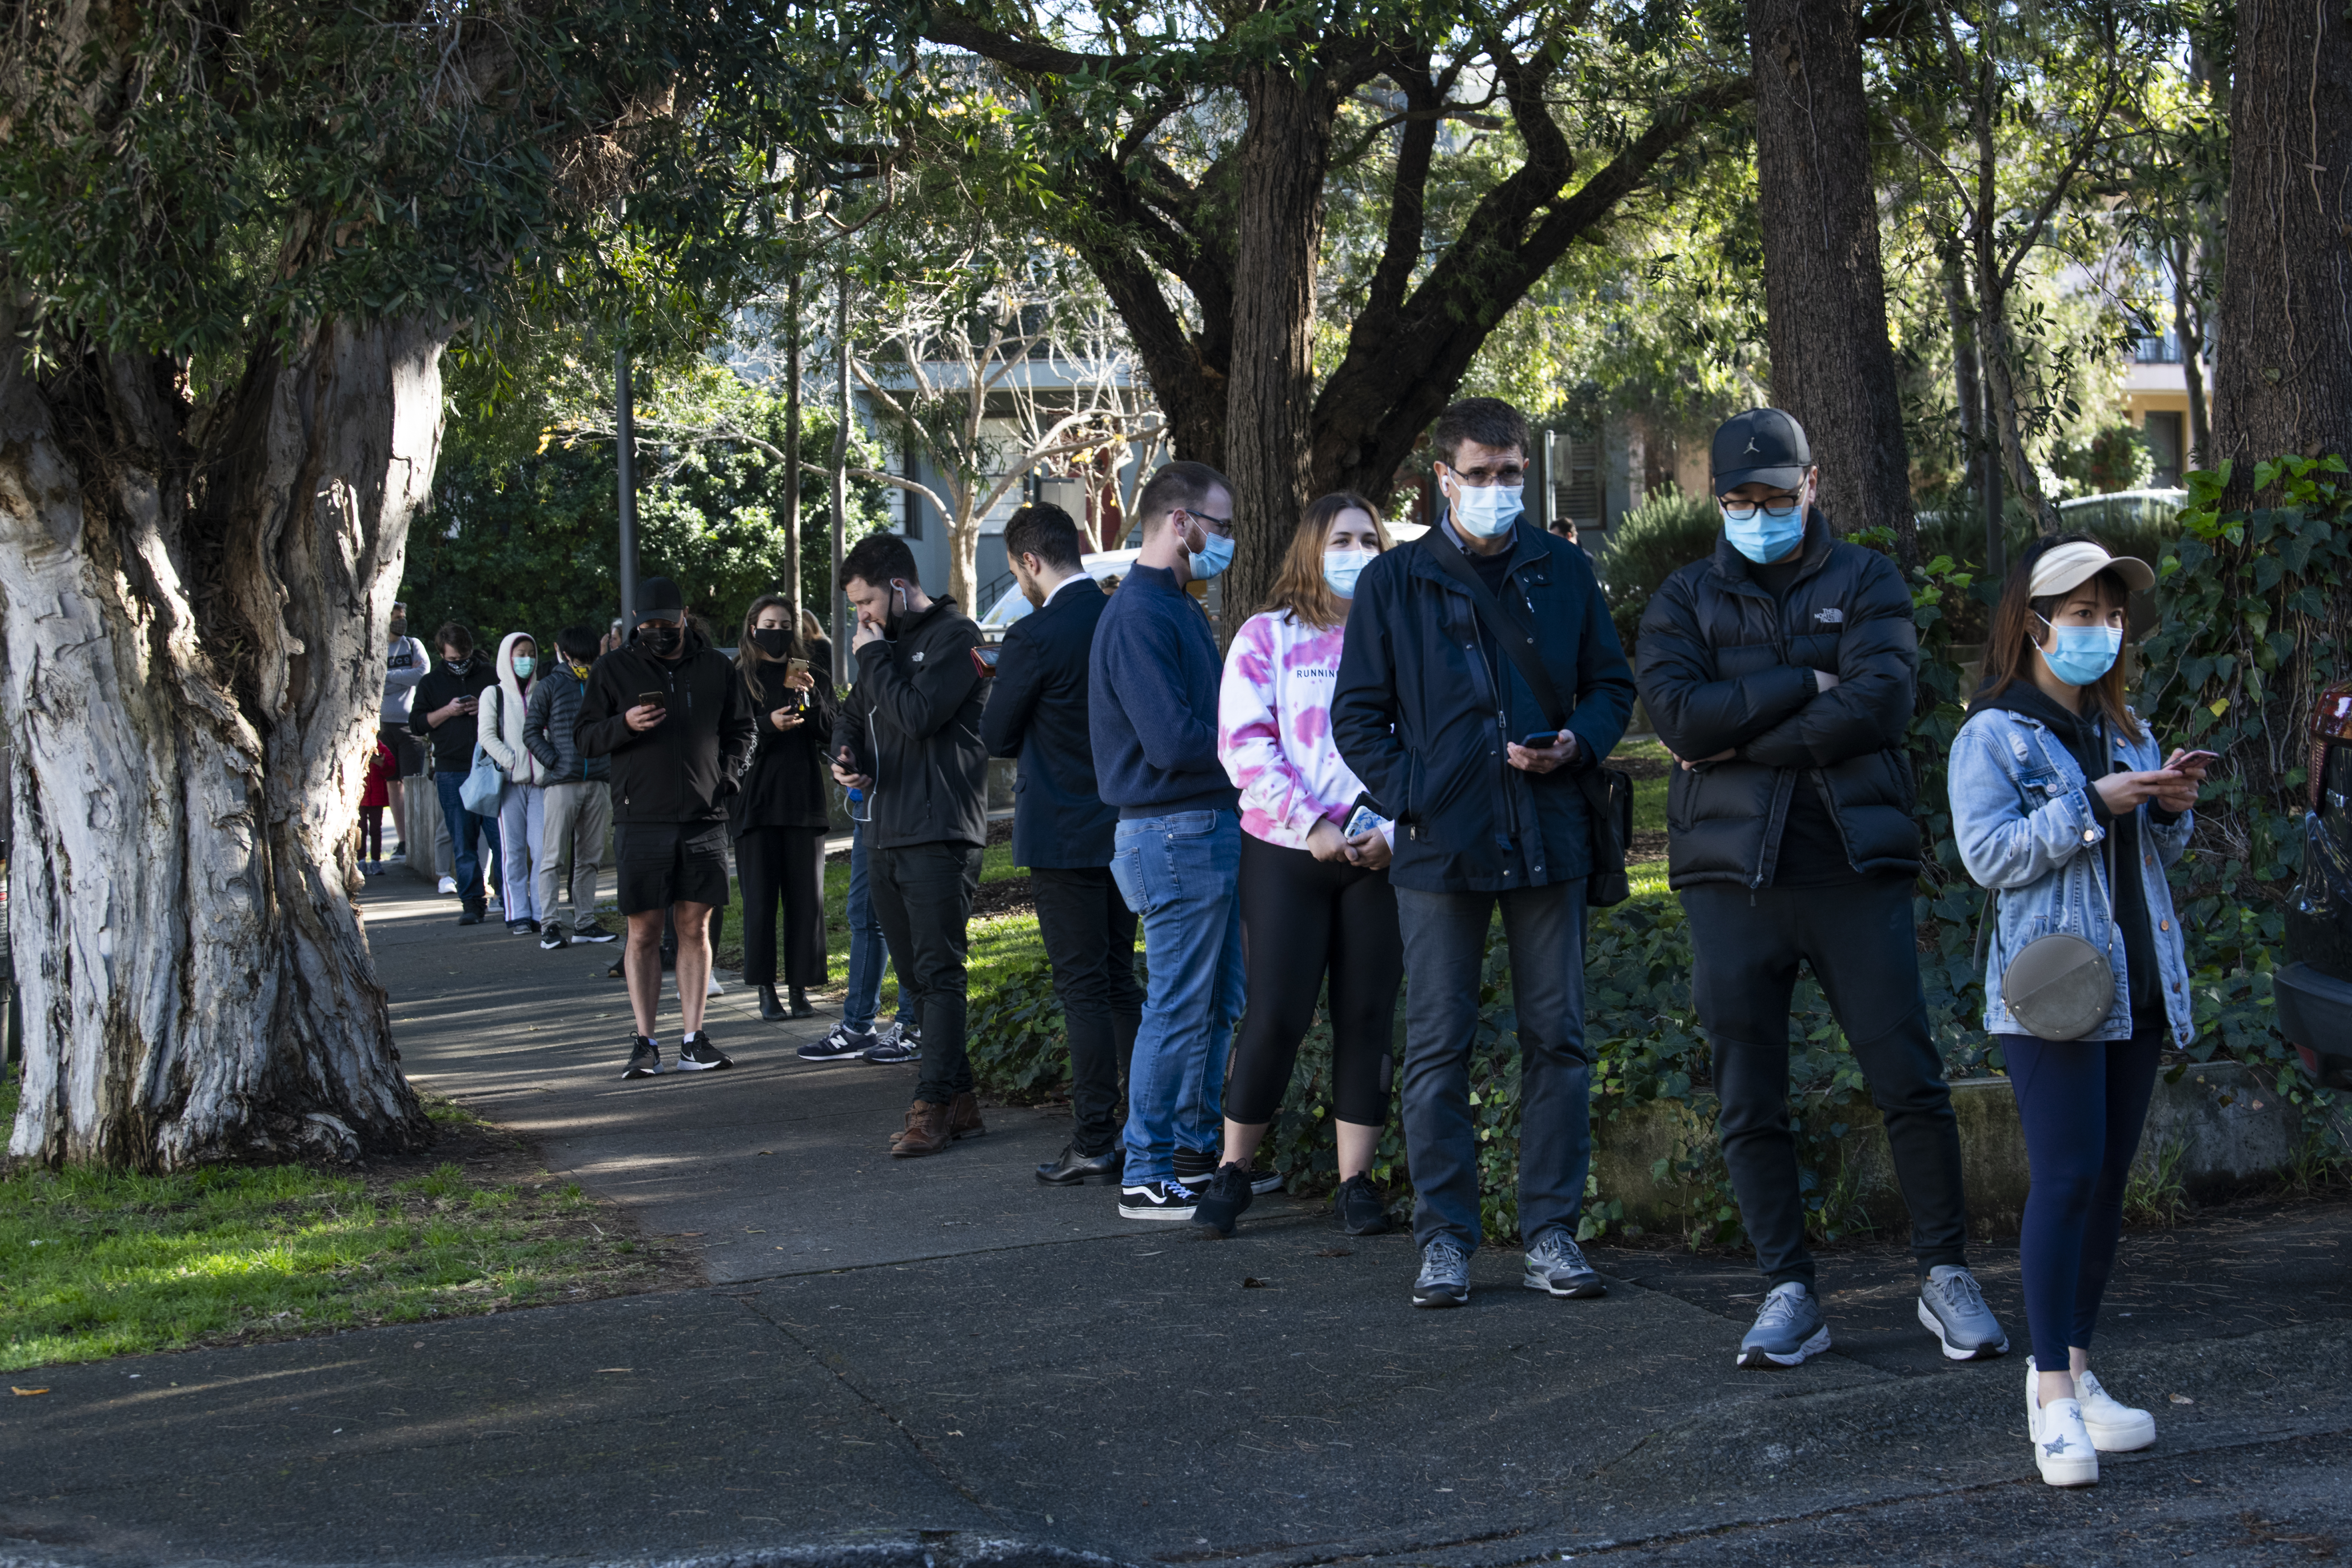 People queuing for a COVID test at a pop up clinic on Beaconsfield St, Alexandria after two local acquired COVID-19 cases were detected.